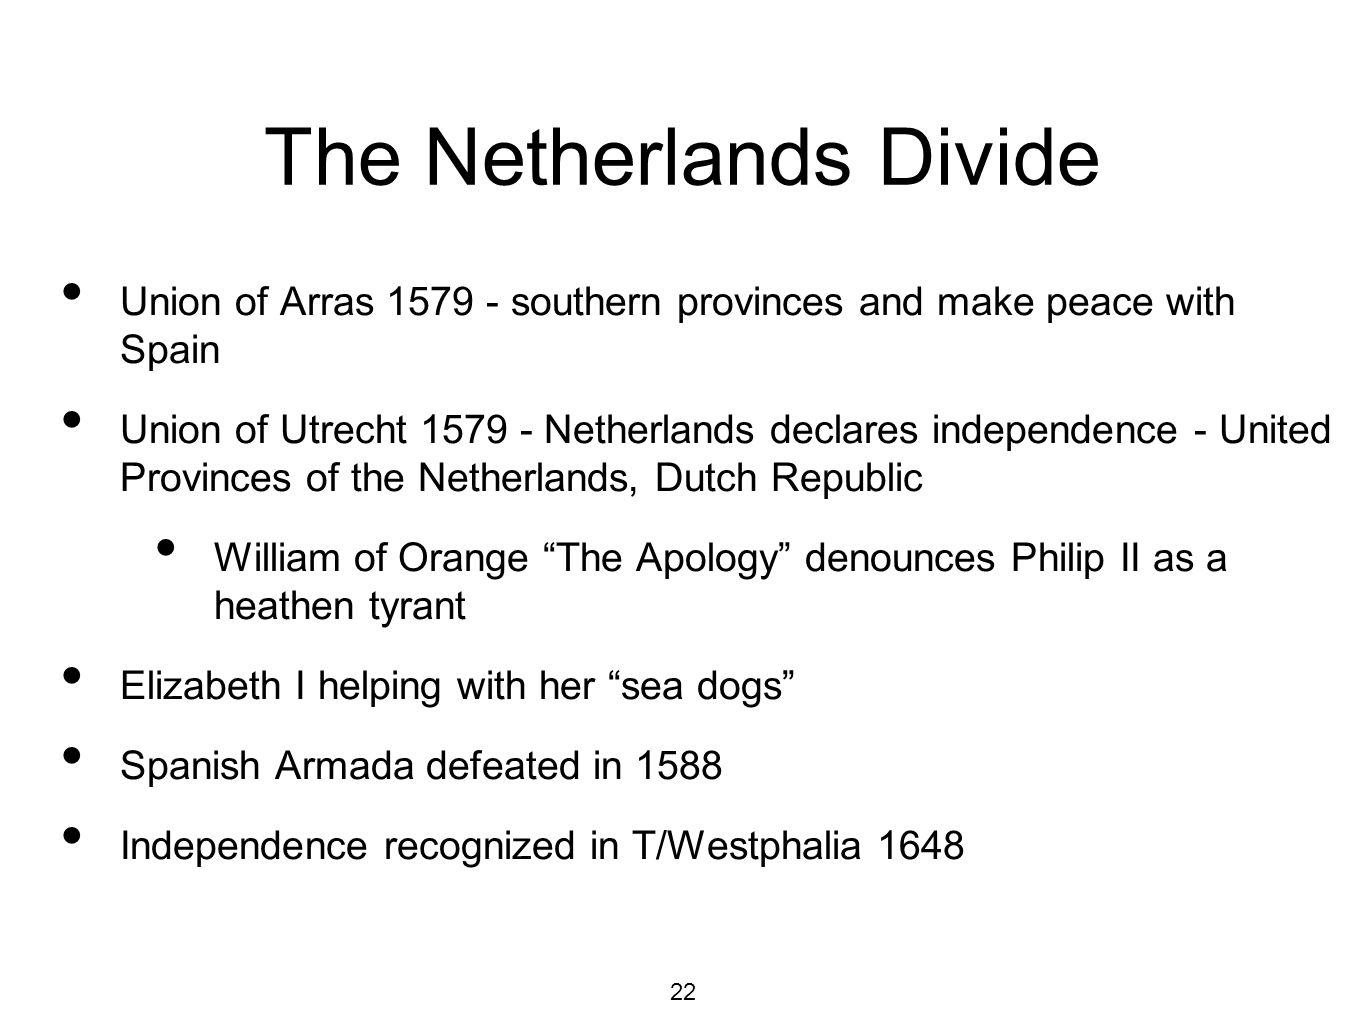 22 The Netherlands Divide Union of Arras 1579 - southern provinces and make peace with Spain Union of Utrecht 1579 - Netherlands declares independence - United Provinces of the Netherlands, Dutch Republic William of Orange The Apology denounces Philip II as a heathen tyrant Elizabeth I helping with her sea dogs Spanish Armada defeated in 1588 Independence recognized in T/Westphalia 1648